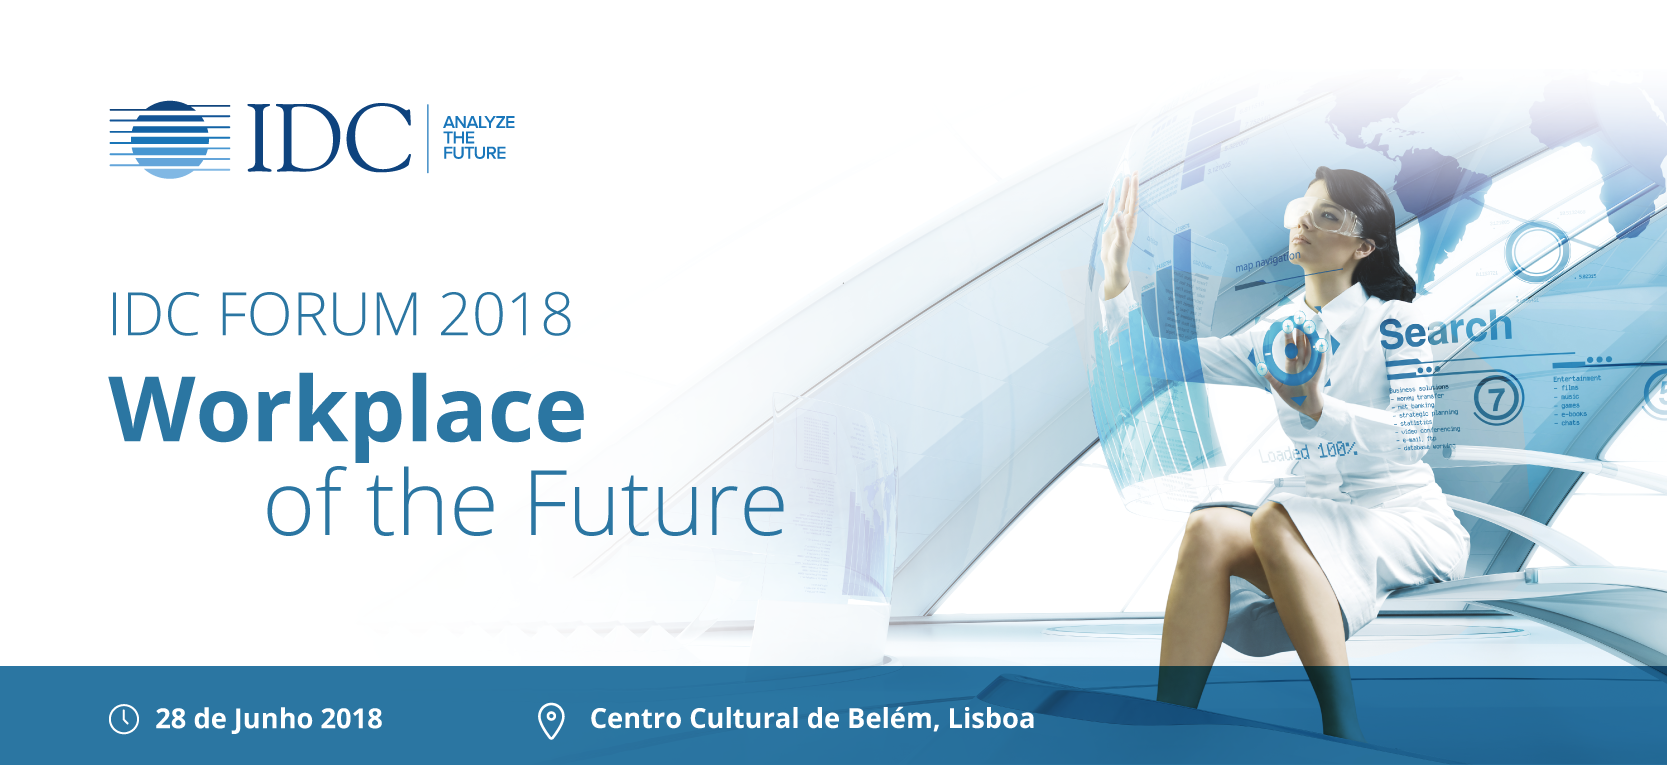 WORKPLACE OF THE FUTURE | IDC FORUM 2018